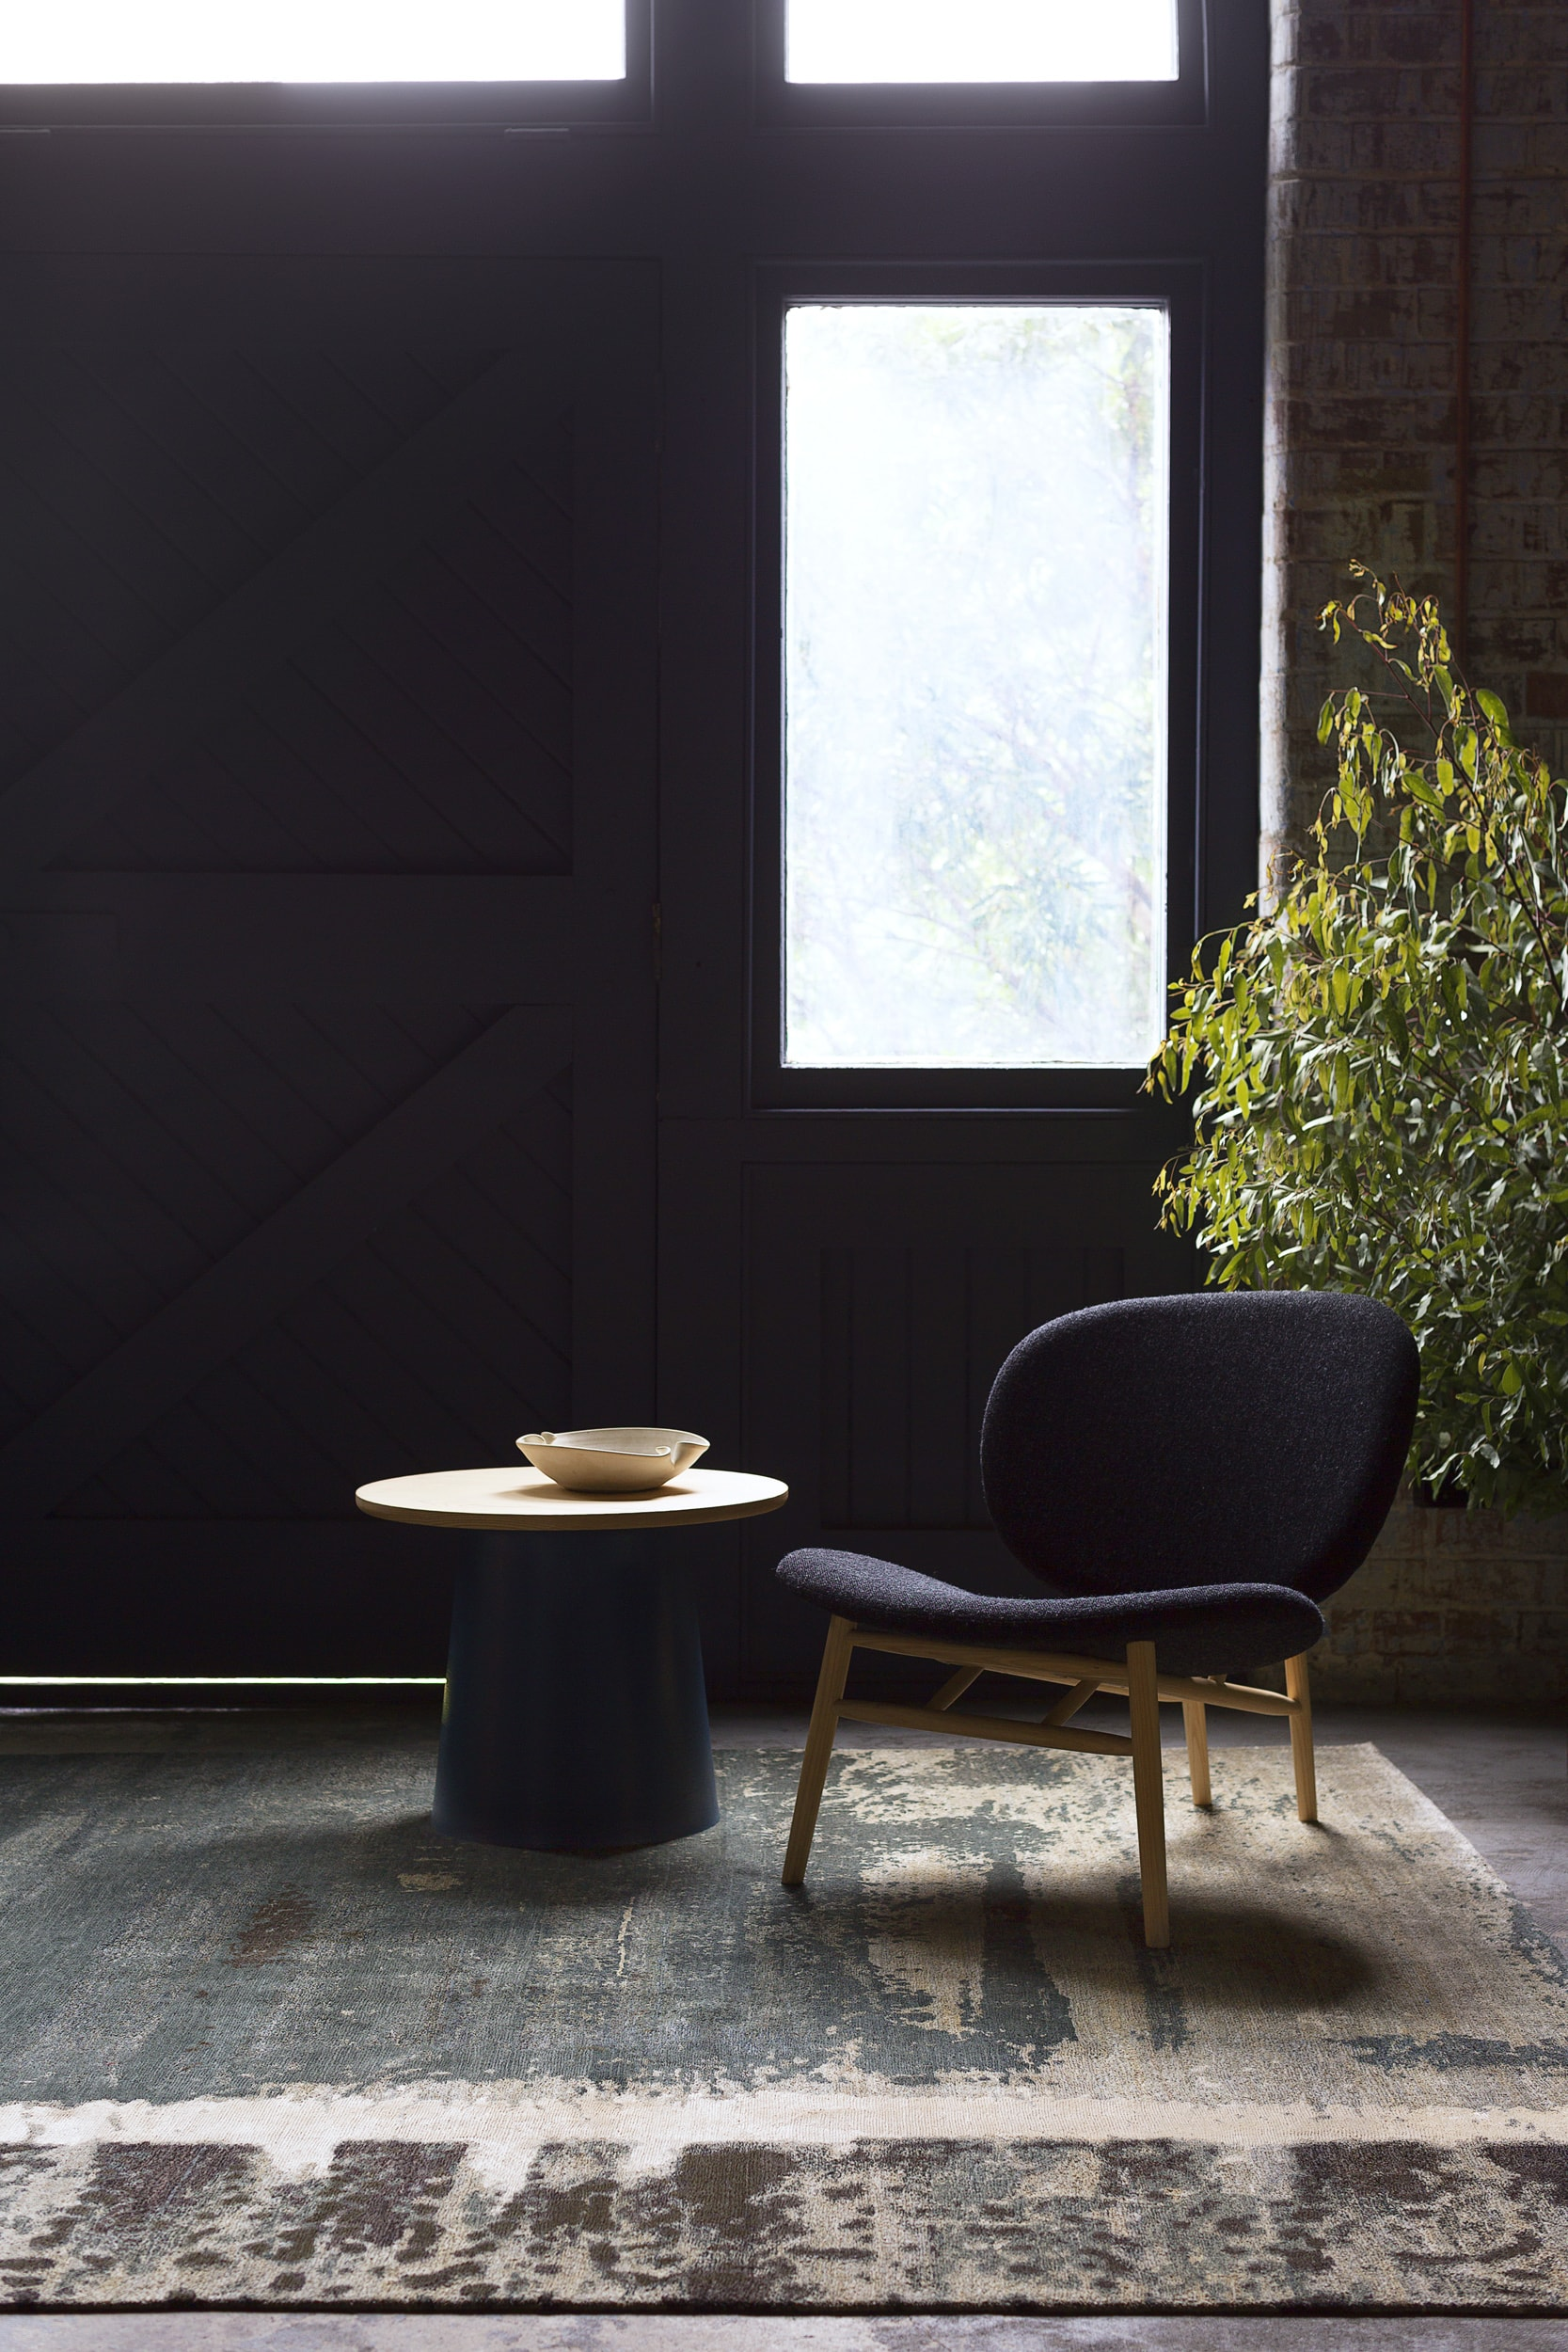 Designer Rugs Launch New Collection In Collaboration With Hare And Klein Collection Feature Australiapalimpsest Edit 3 Min